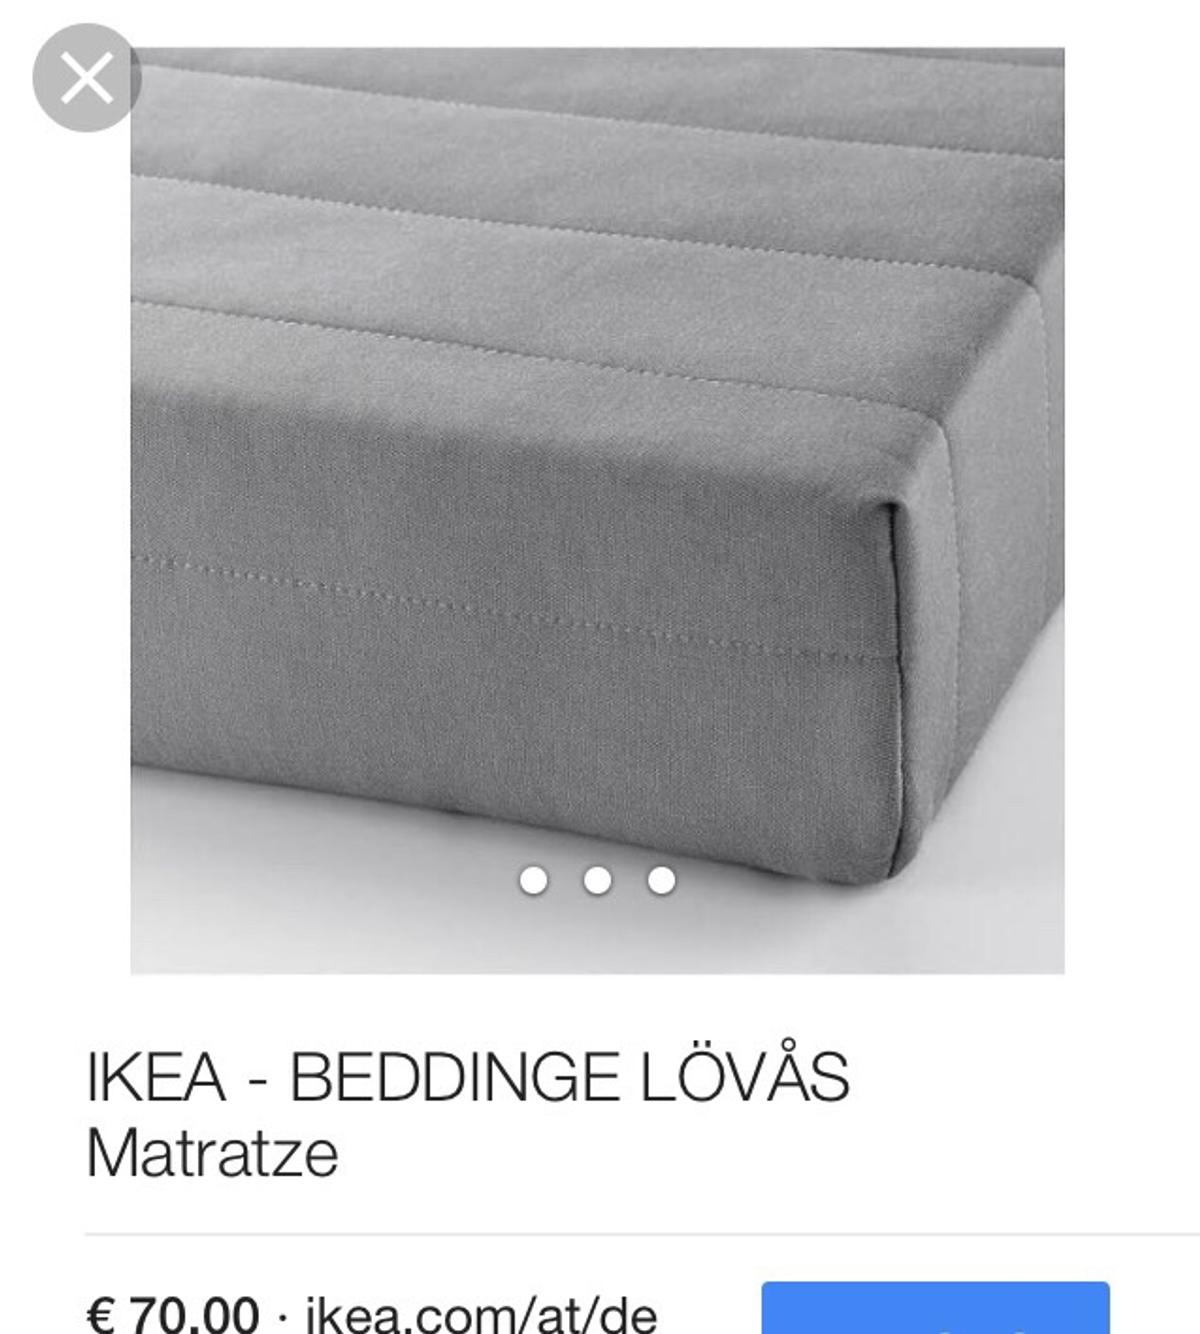 Bettsofa Ikea Beddinge In 6020 Innsbruck For 110 00 For Sale Shpock